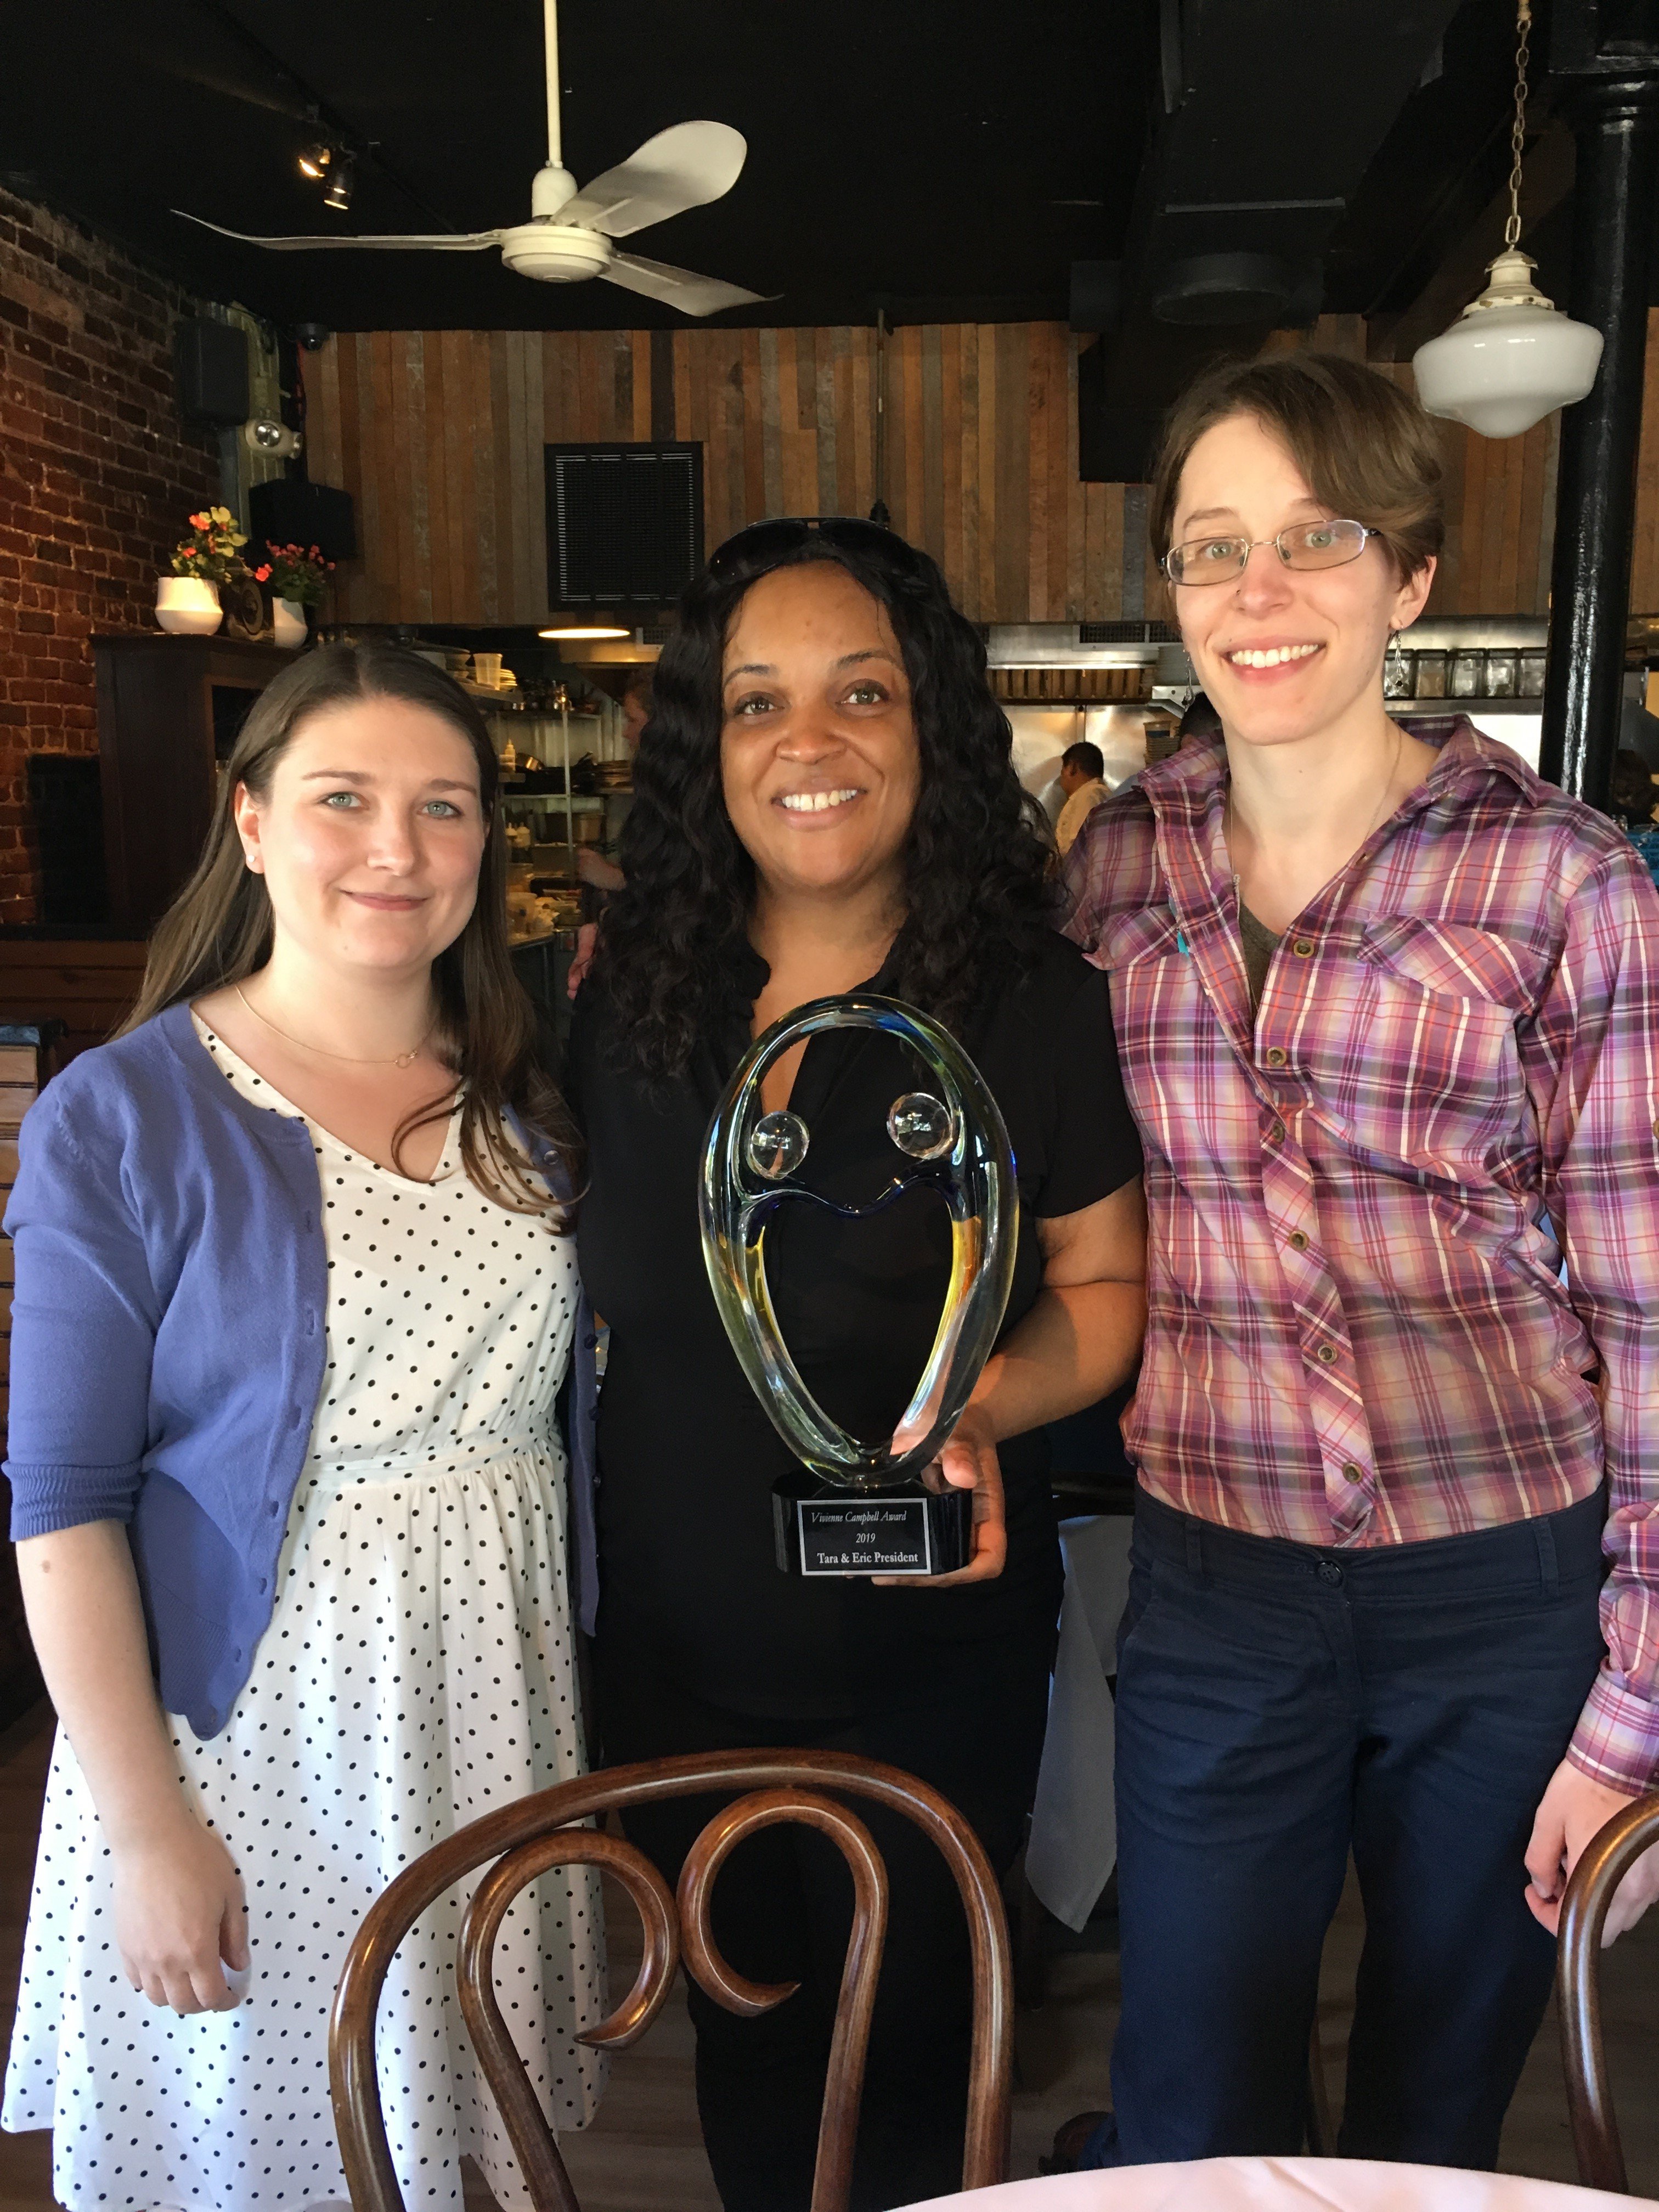 Tara and Eric President Win the Vivienne Campbell Award